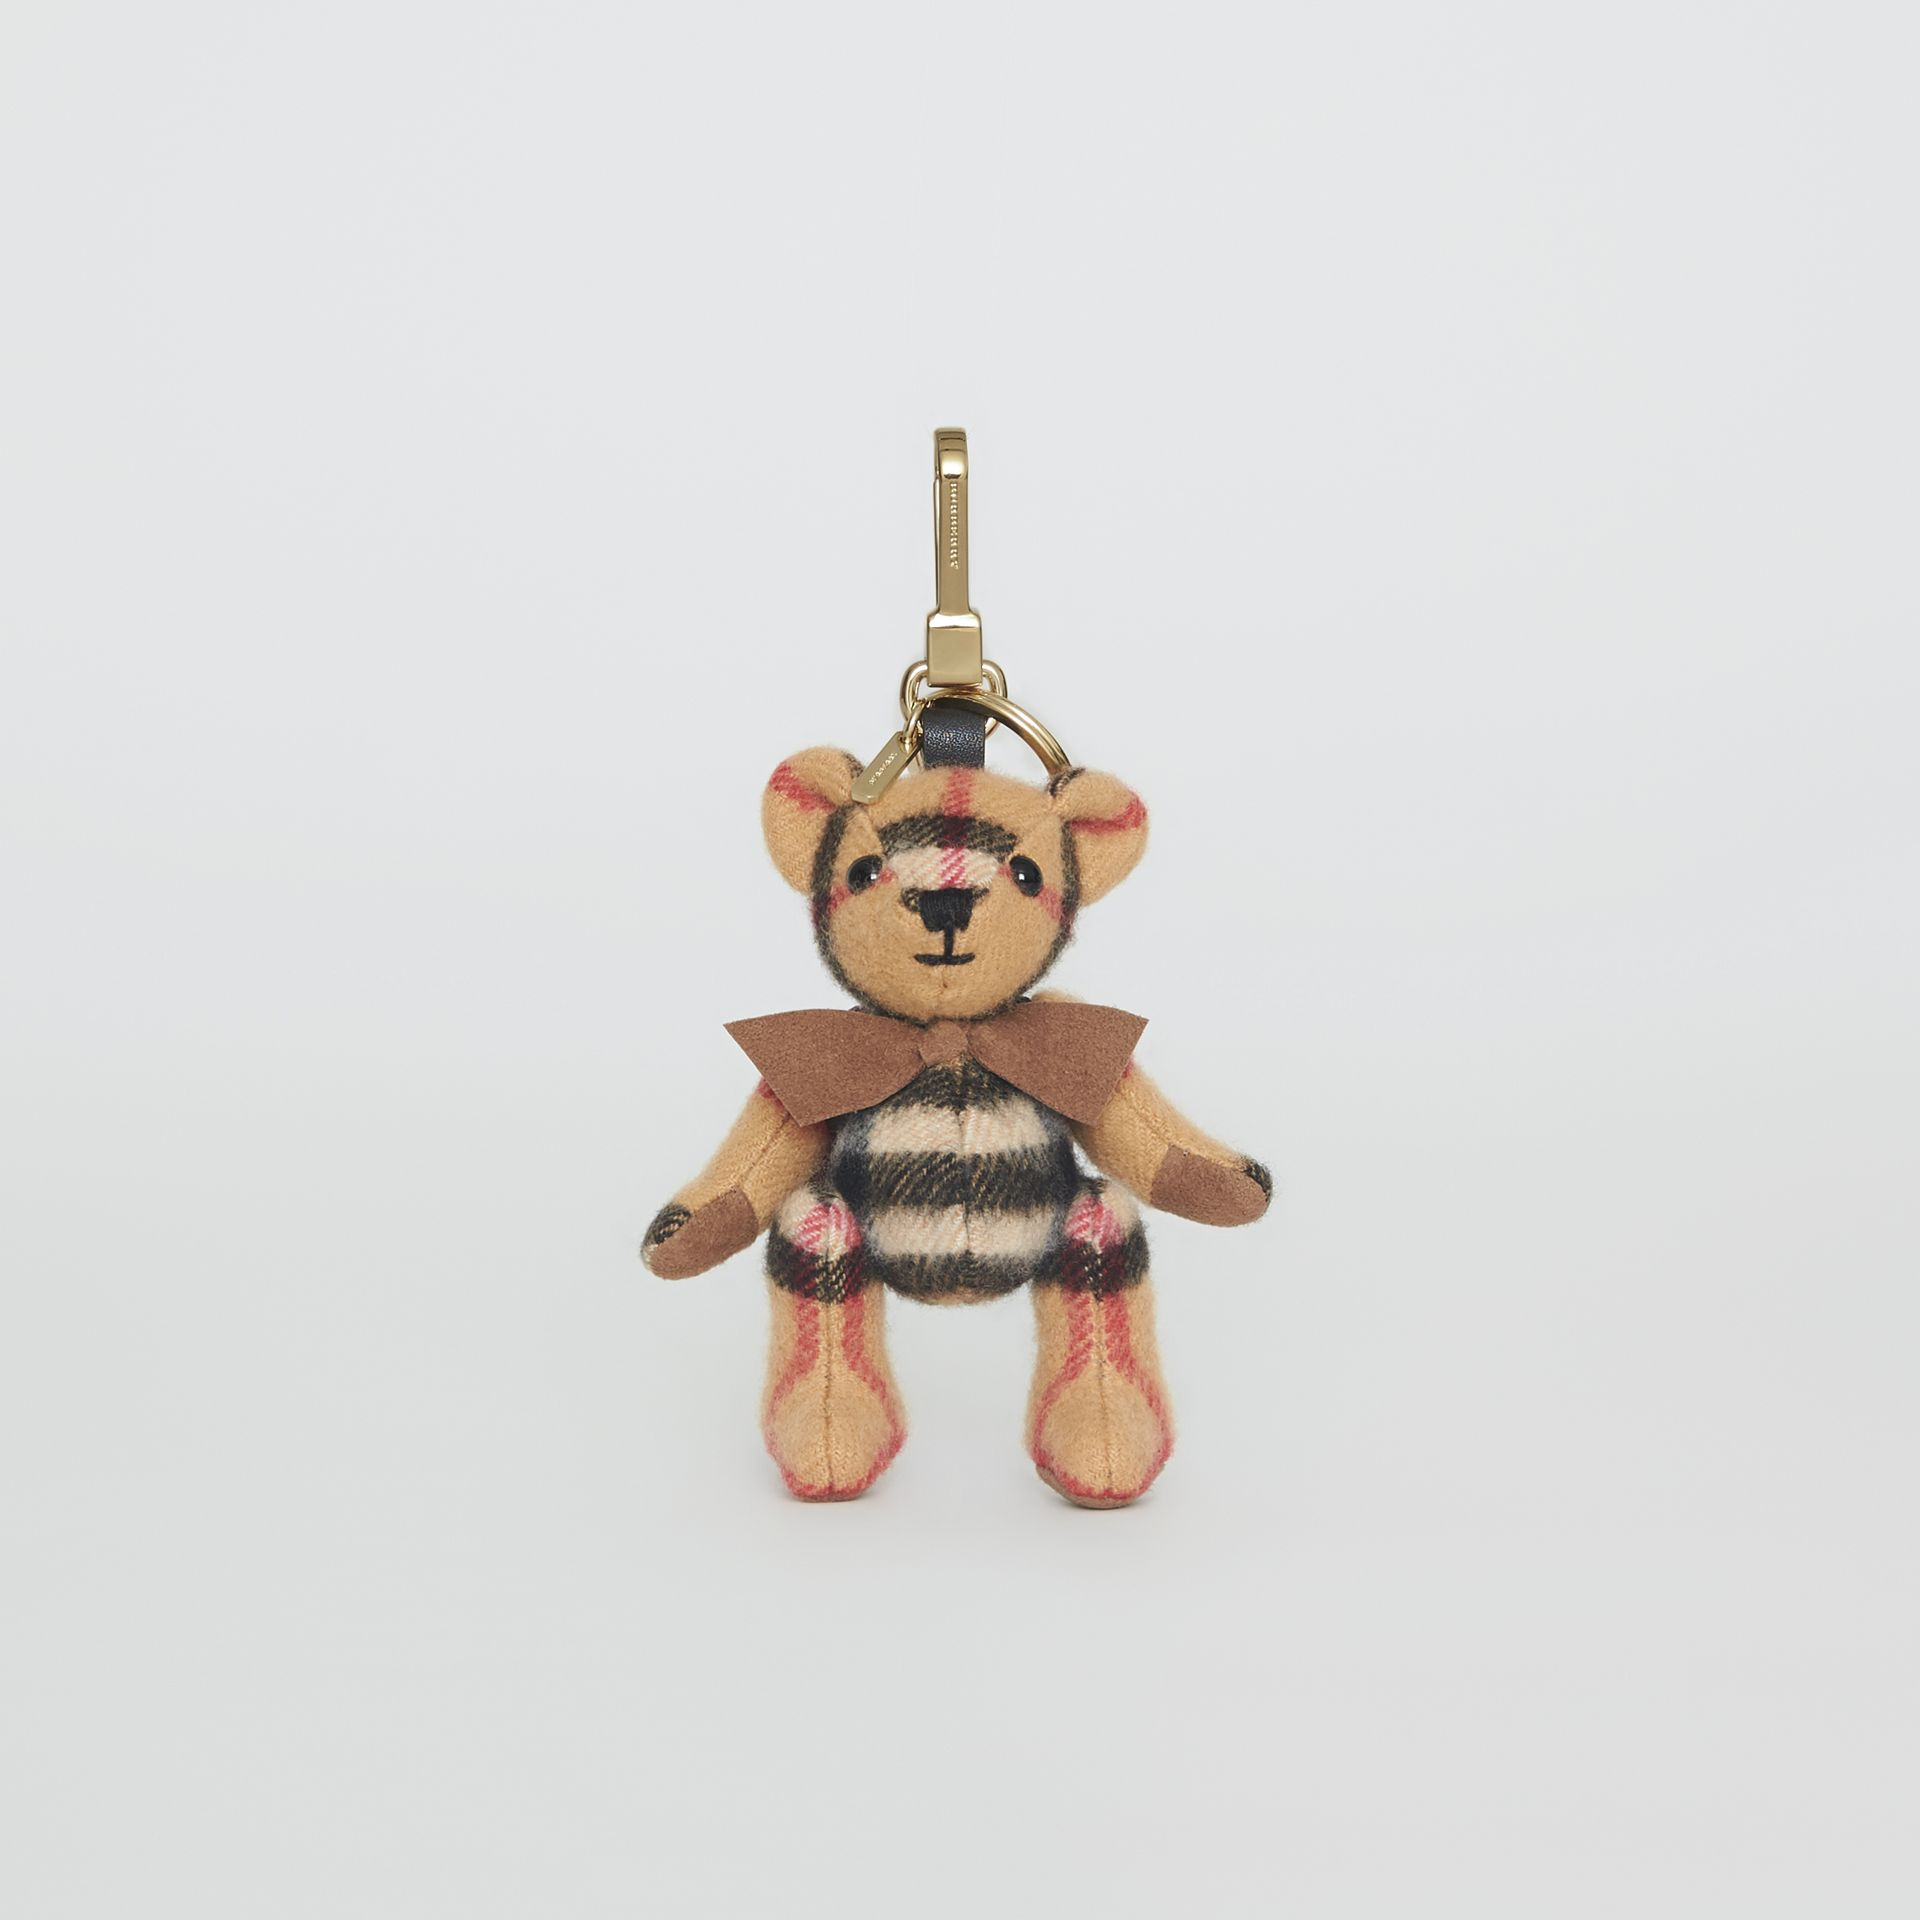 Bijou porte-clés Thomas Bear en cachemire à motif Vintage check (Jaune Antique) | Burberry - photo de la galerie 3